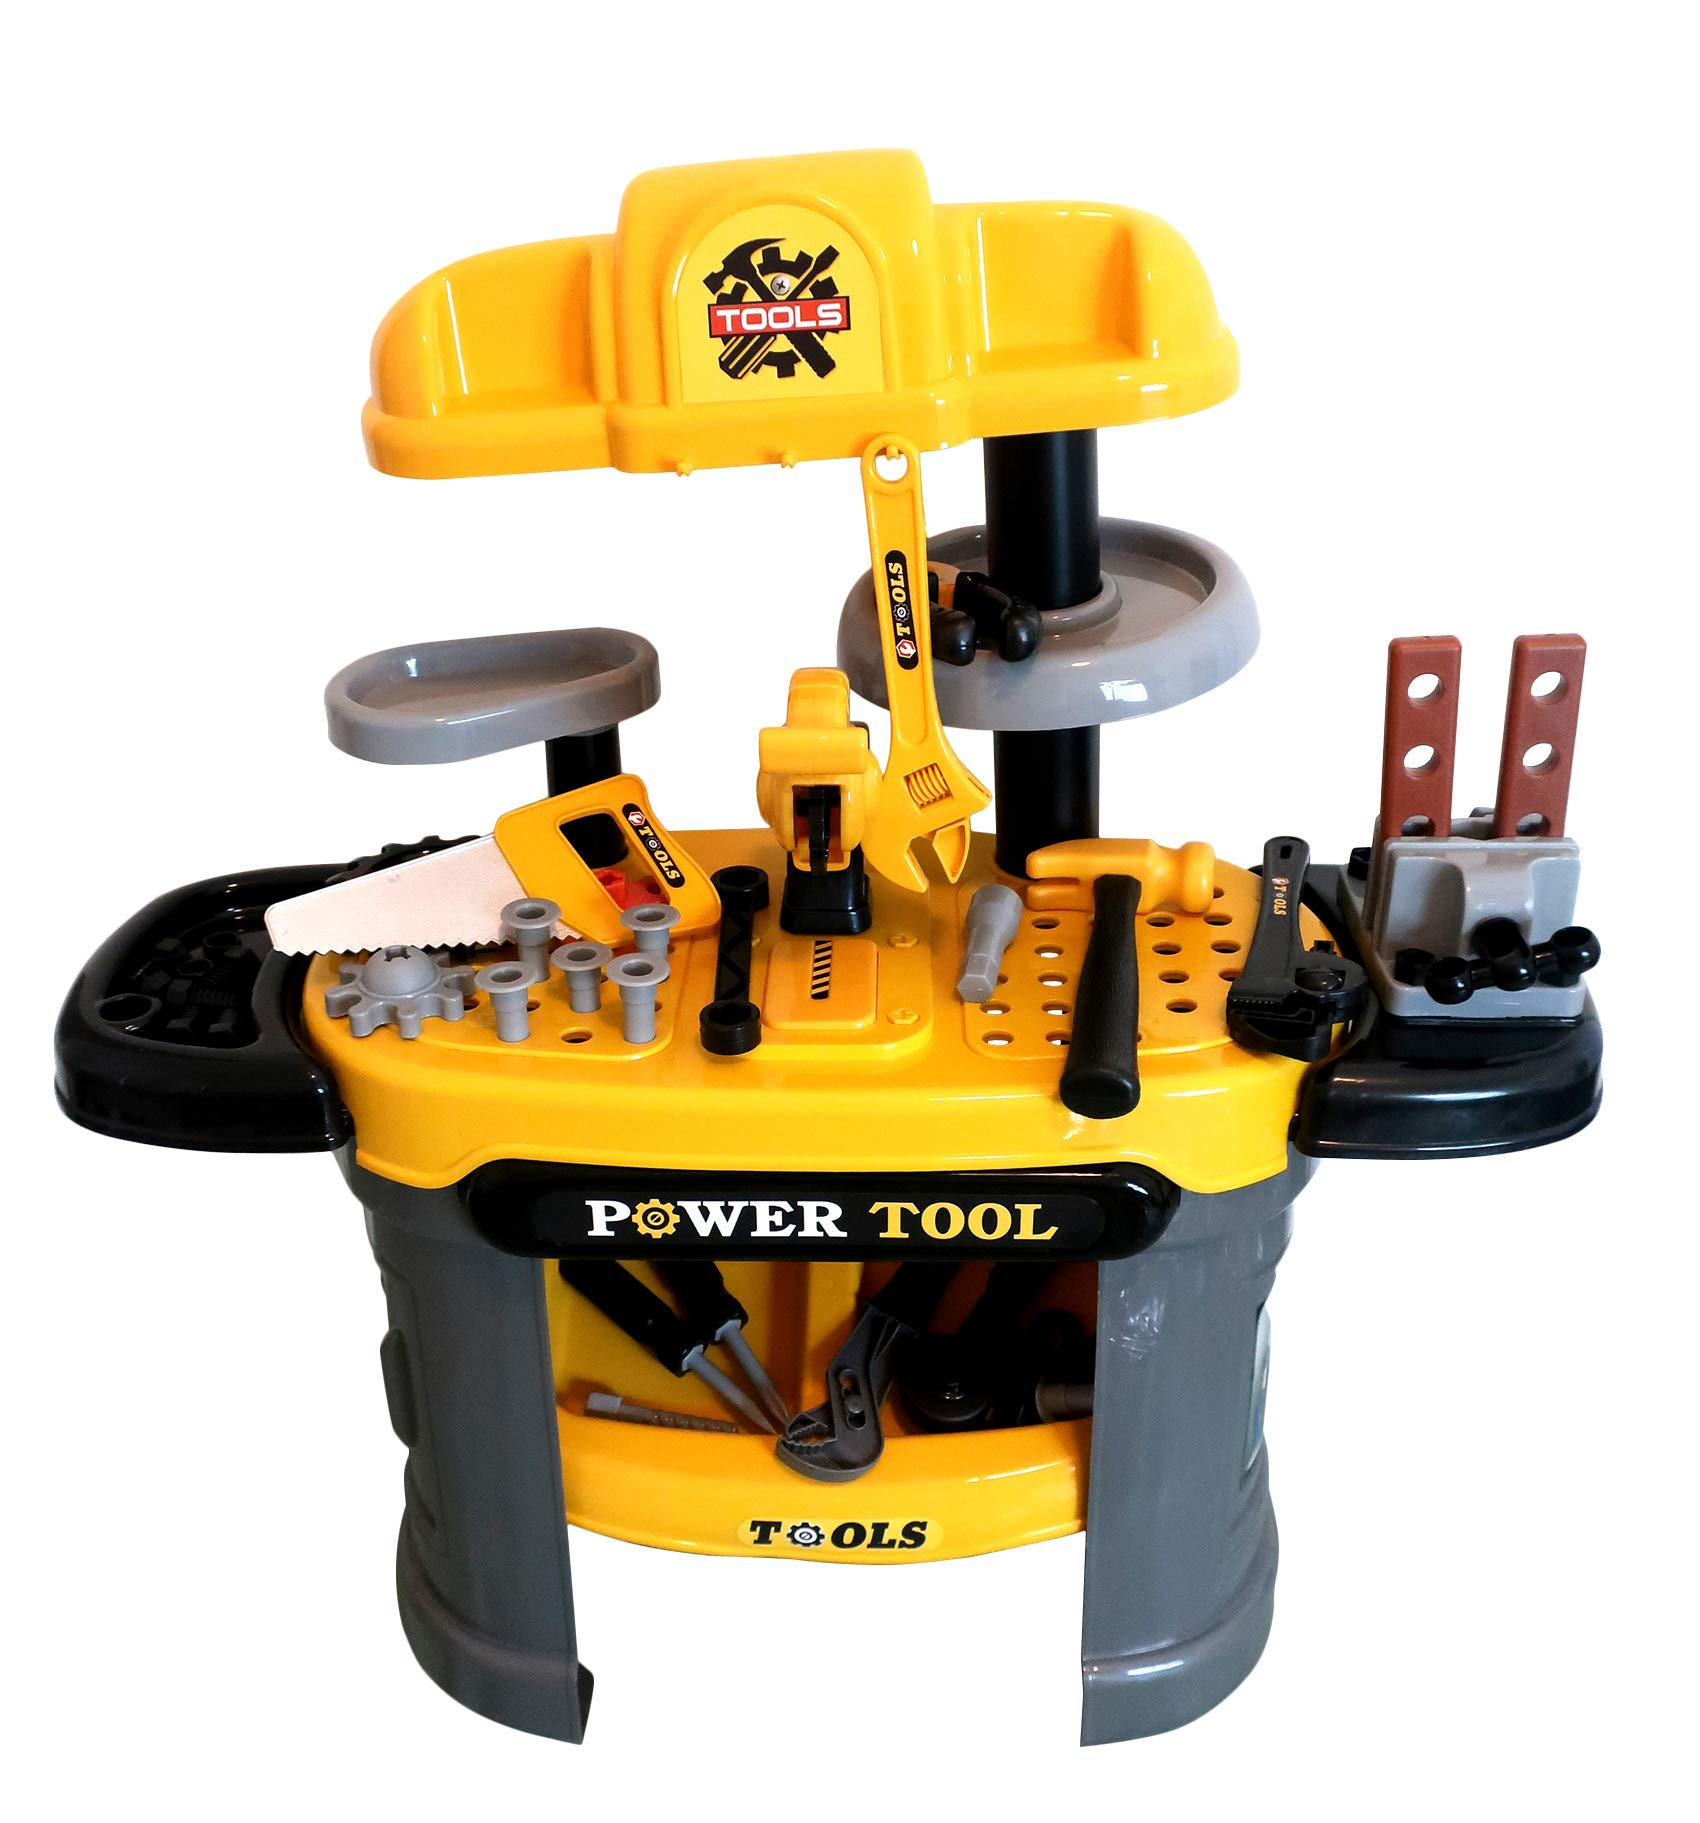 Forest & Twelfth Kids Deluxe Tool Set for Kids - 50 Piece Children's Tool Bench Toy Work Bench with Tools and Accessories - Realistic Action - 66L x 30W x 68H cm